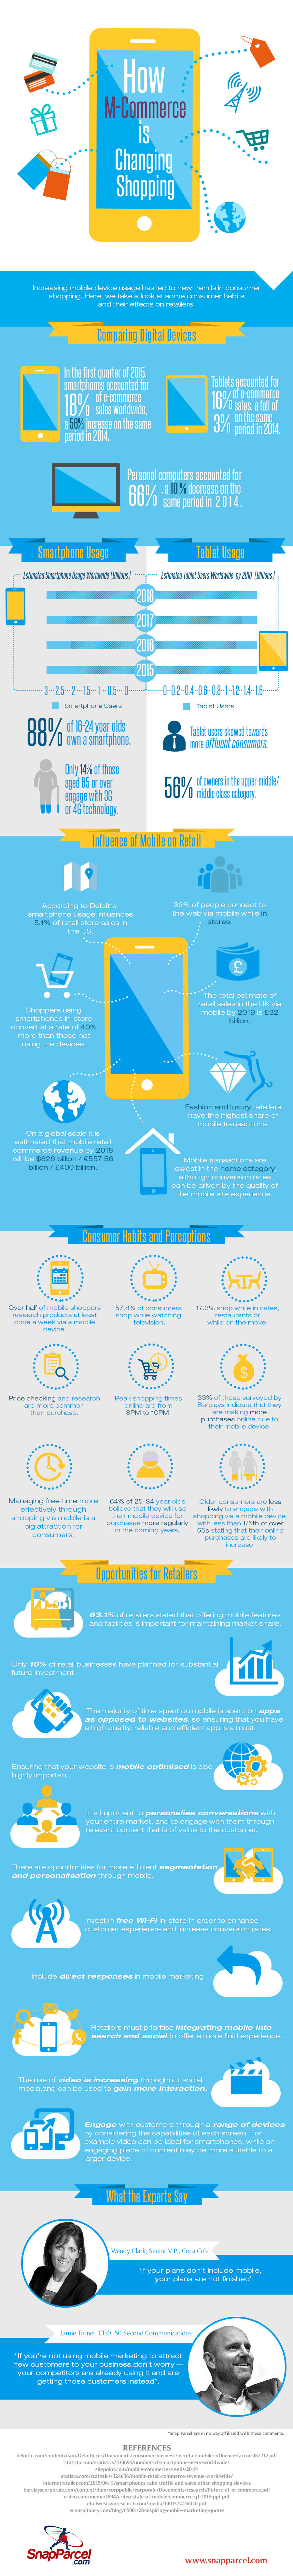 M-Commerce-is-Transforming-Retail-Infographic